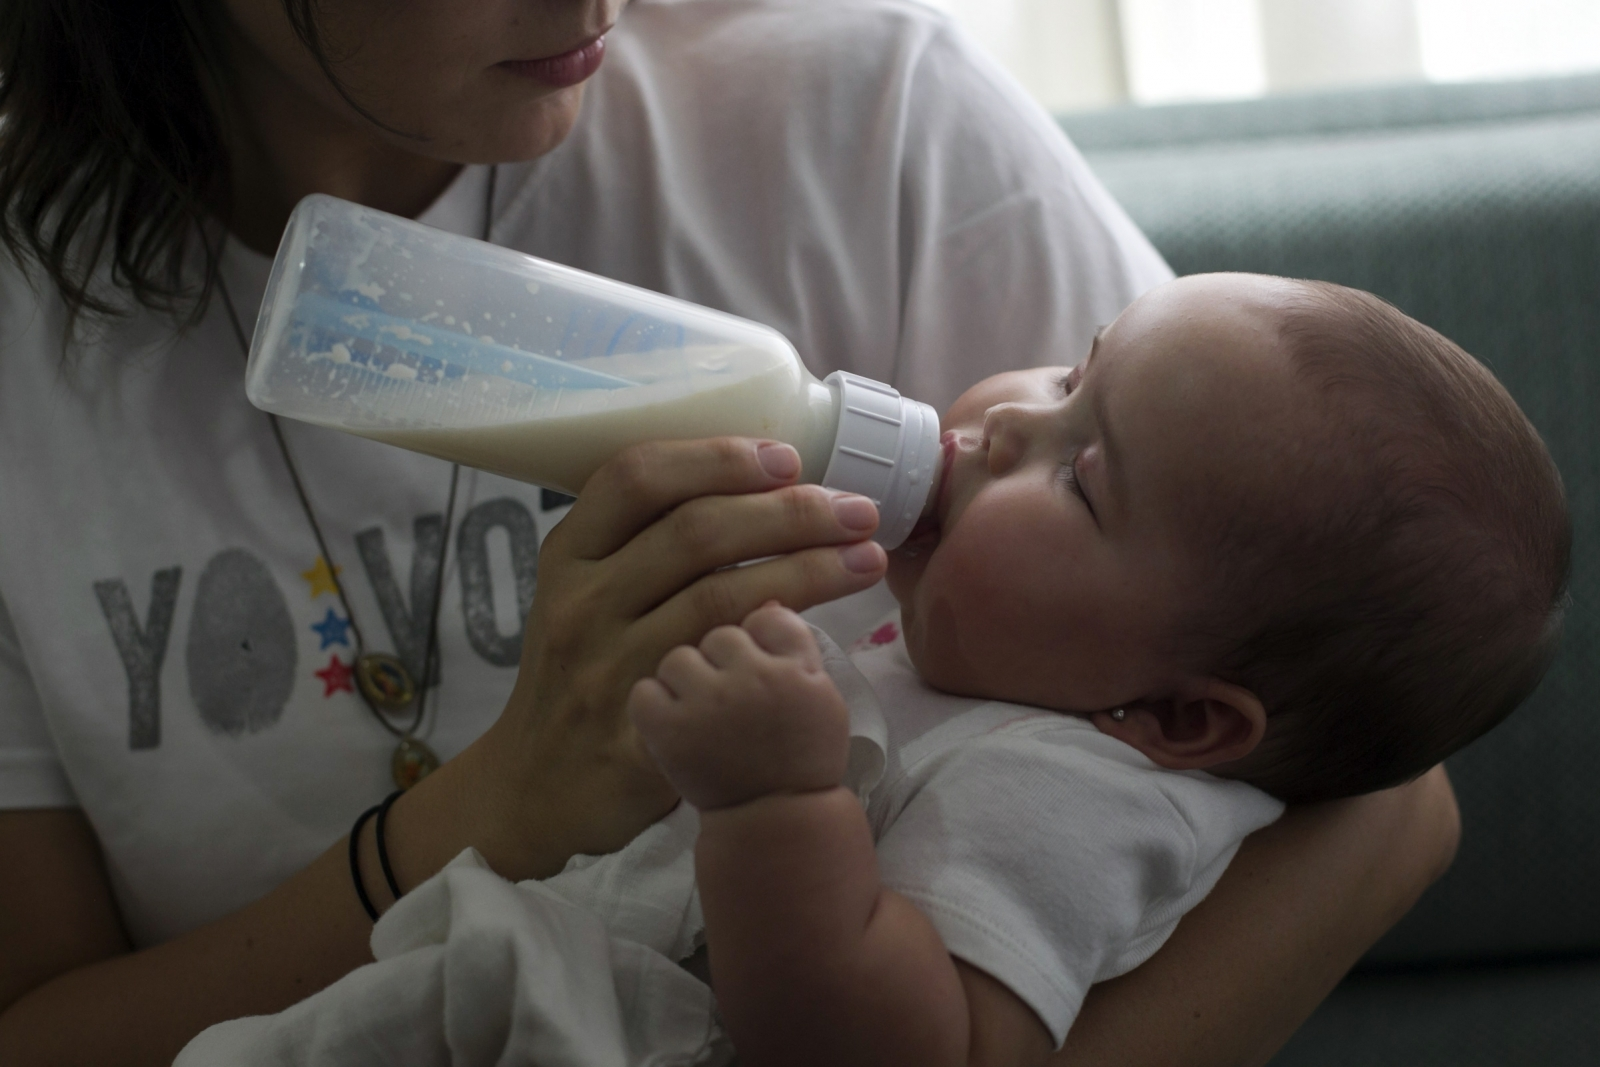 Baby milk sold in United Kingdom in MASSIVE recall after DISEASE outbreak